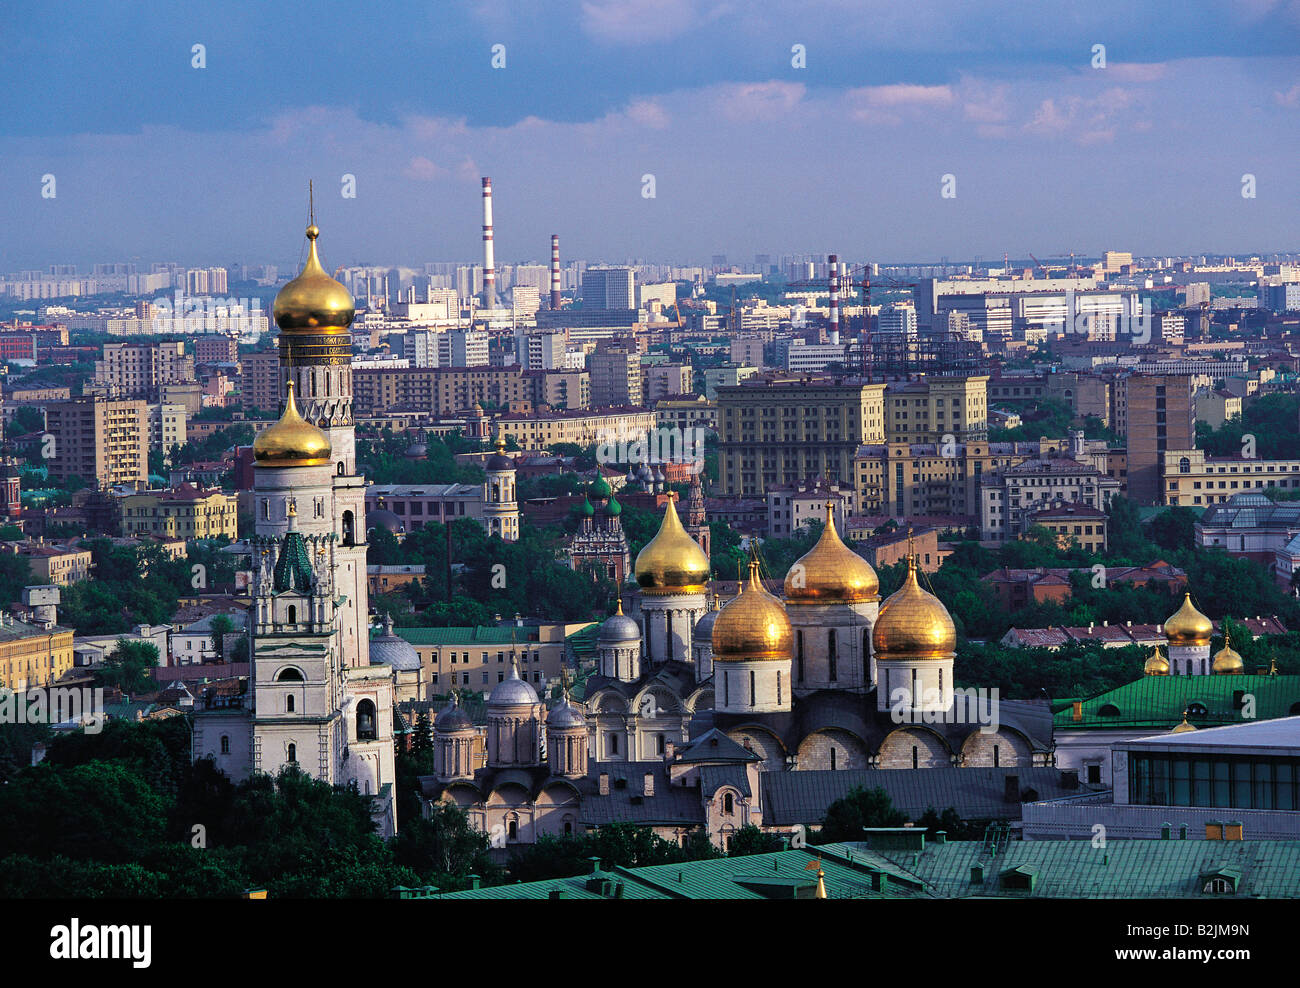 Moscow - the ancient metropolis of Soviet Russia of the 30s